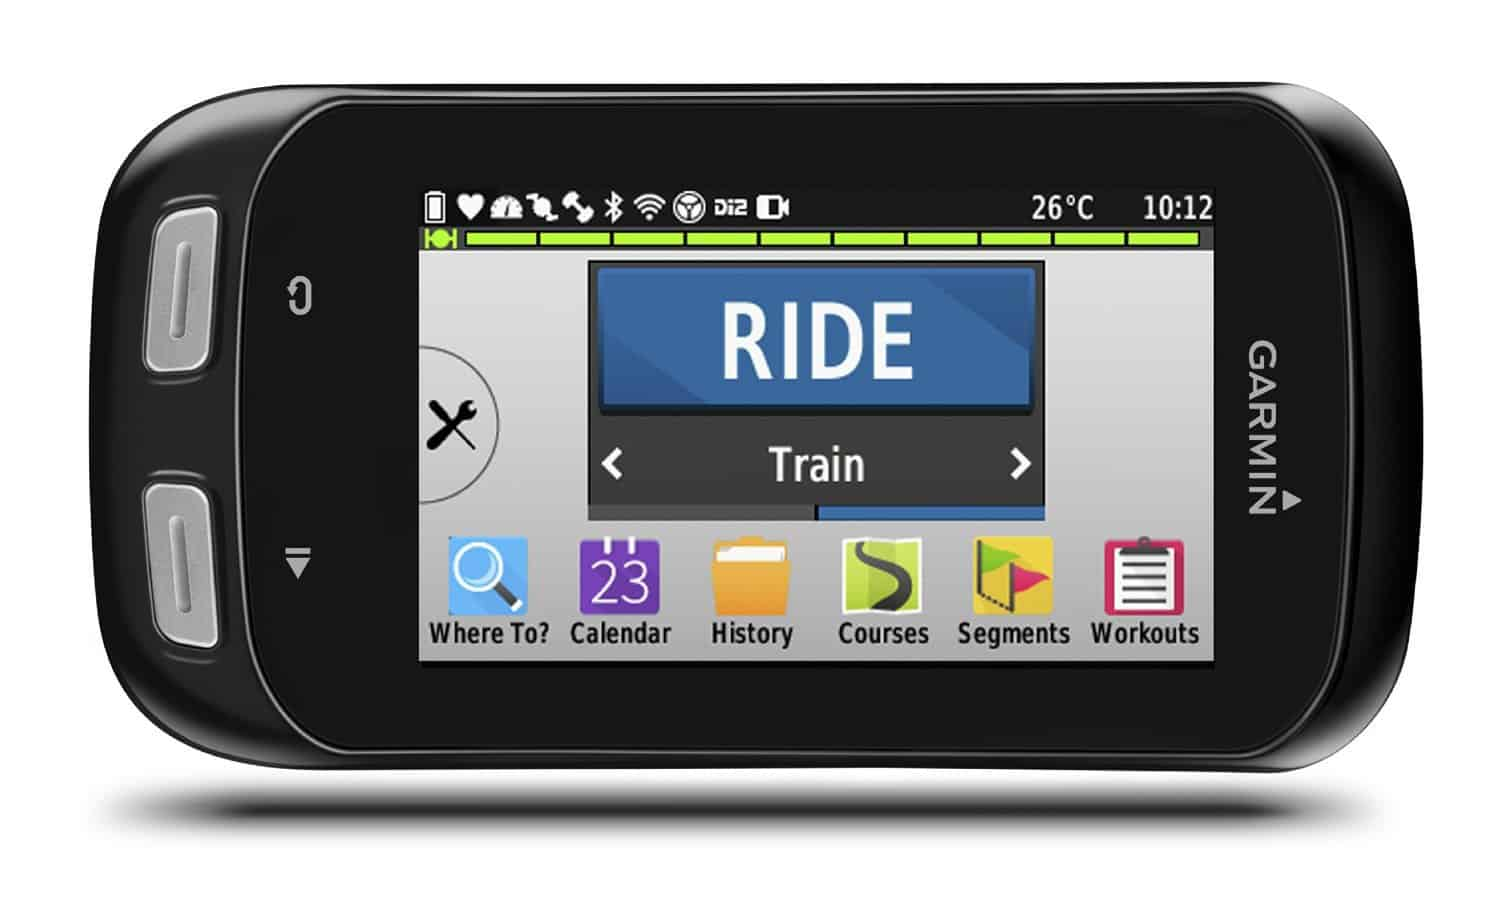 Garmin Edge 1000 - GPS bike computer